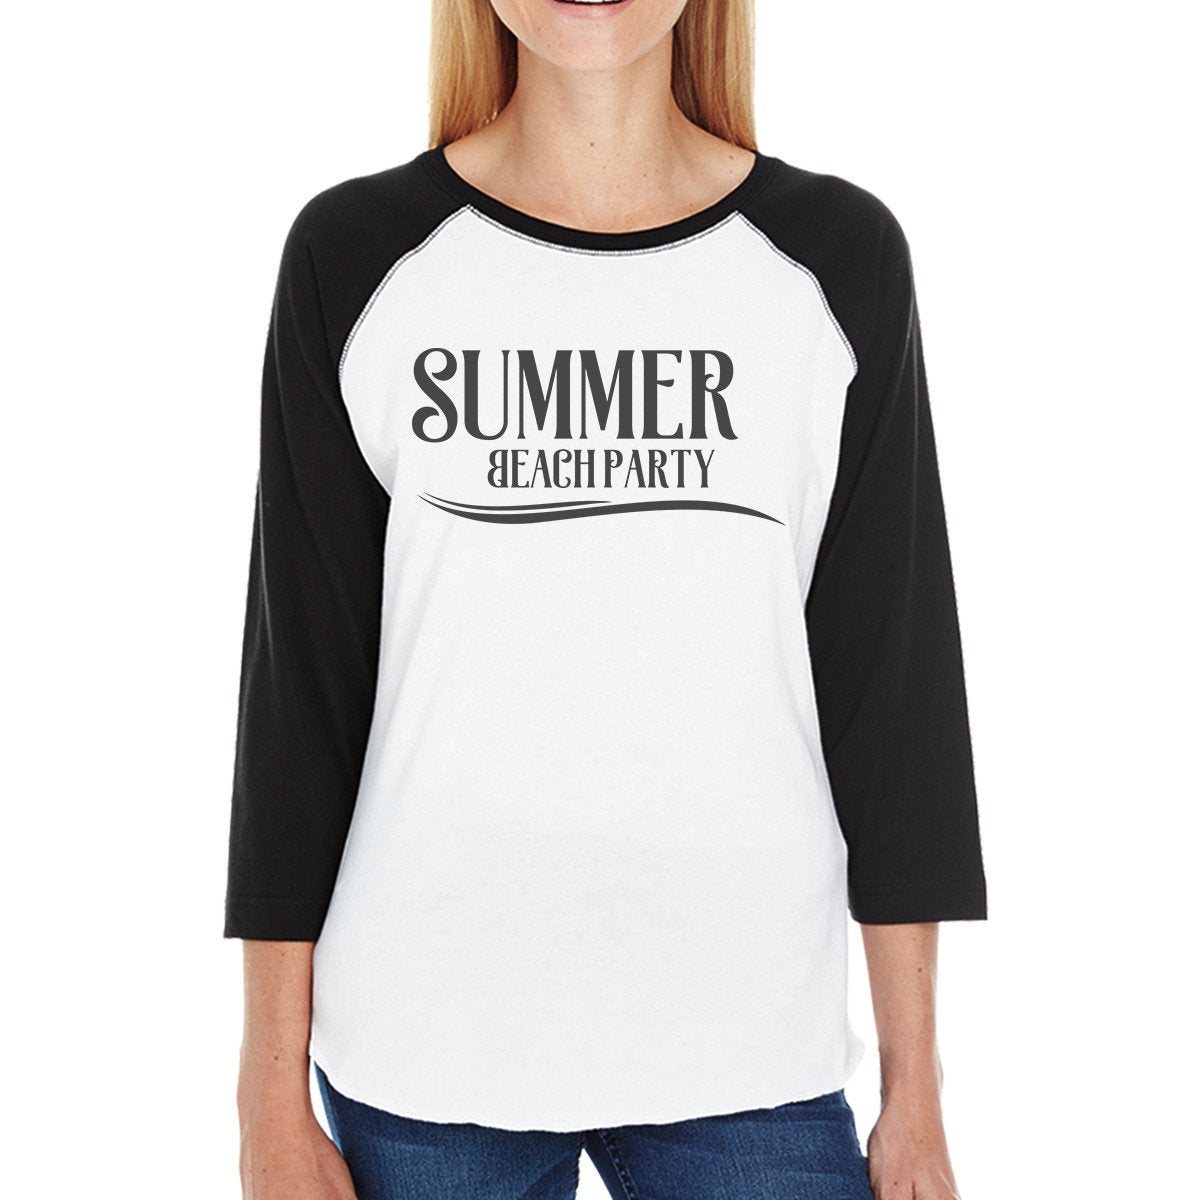 Summer Beach Party Womens Black And White Baseball Shirt